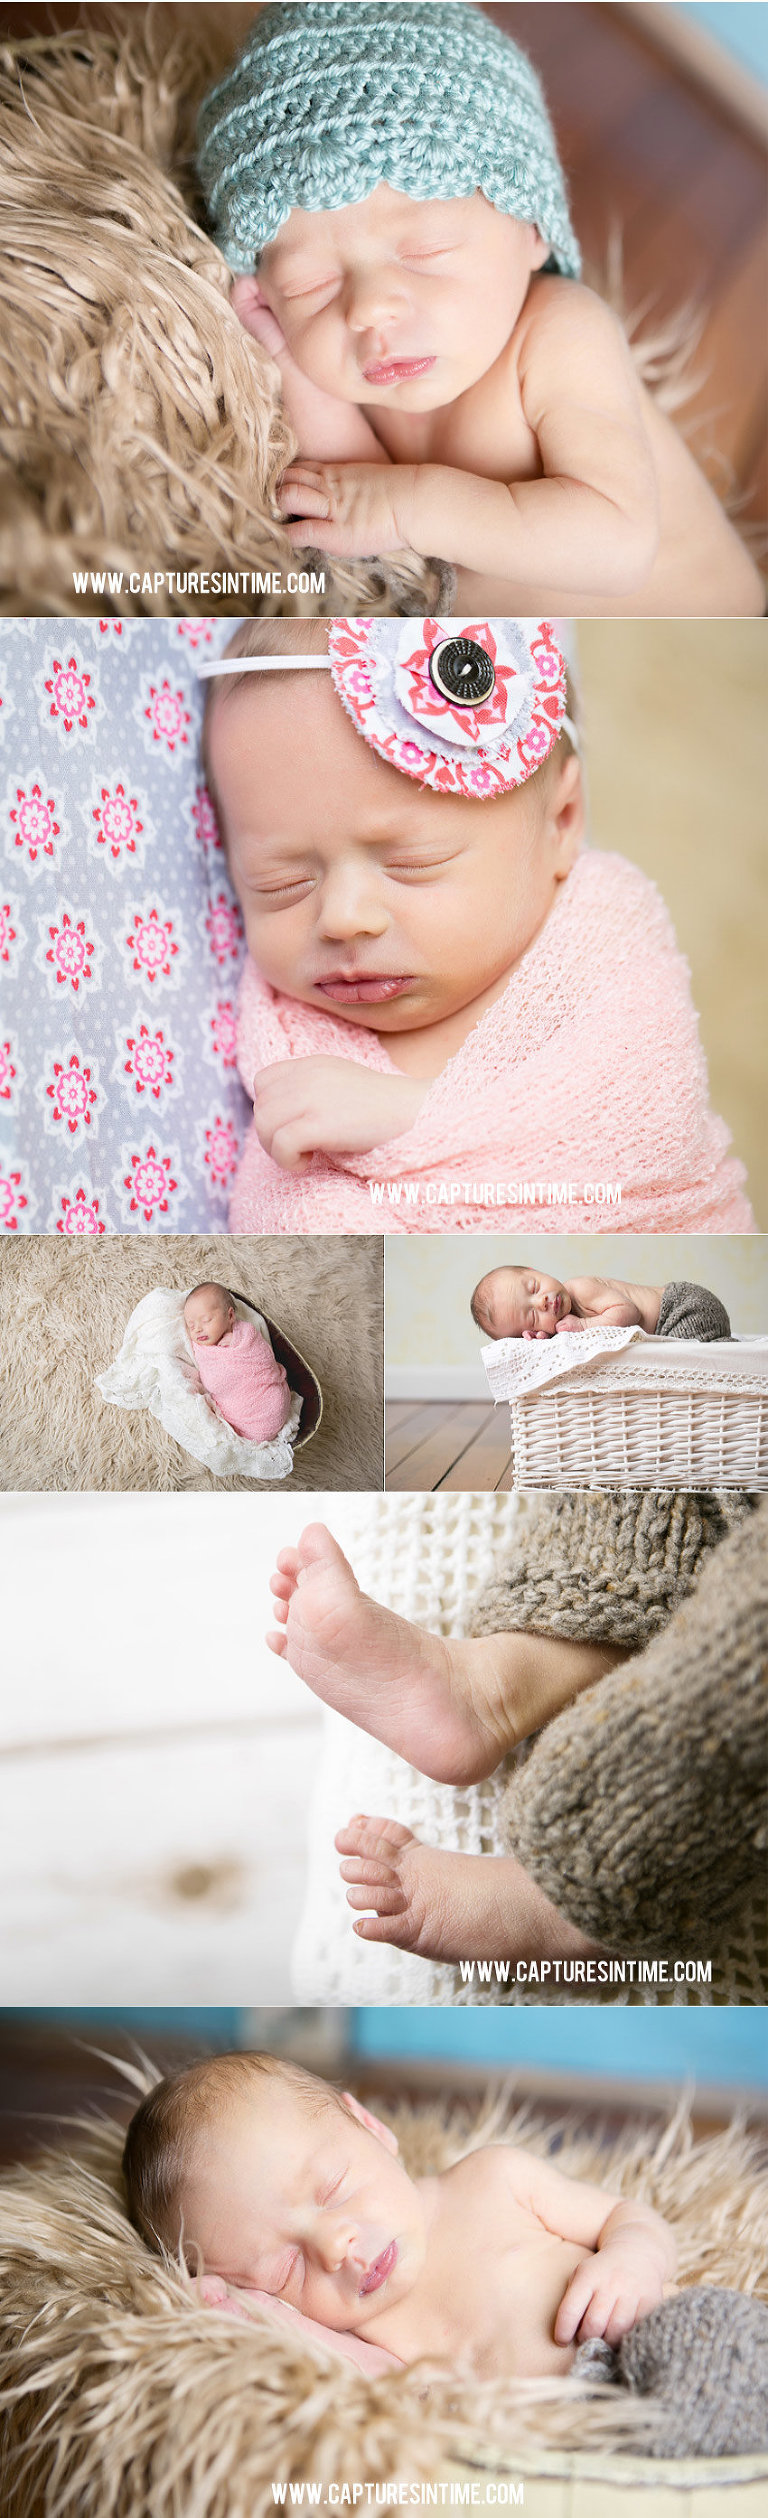 Grain Valley Newborn Photography newborn baby with teal hat and Amy Butler fabrics